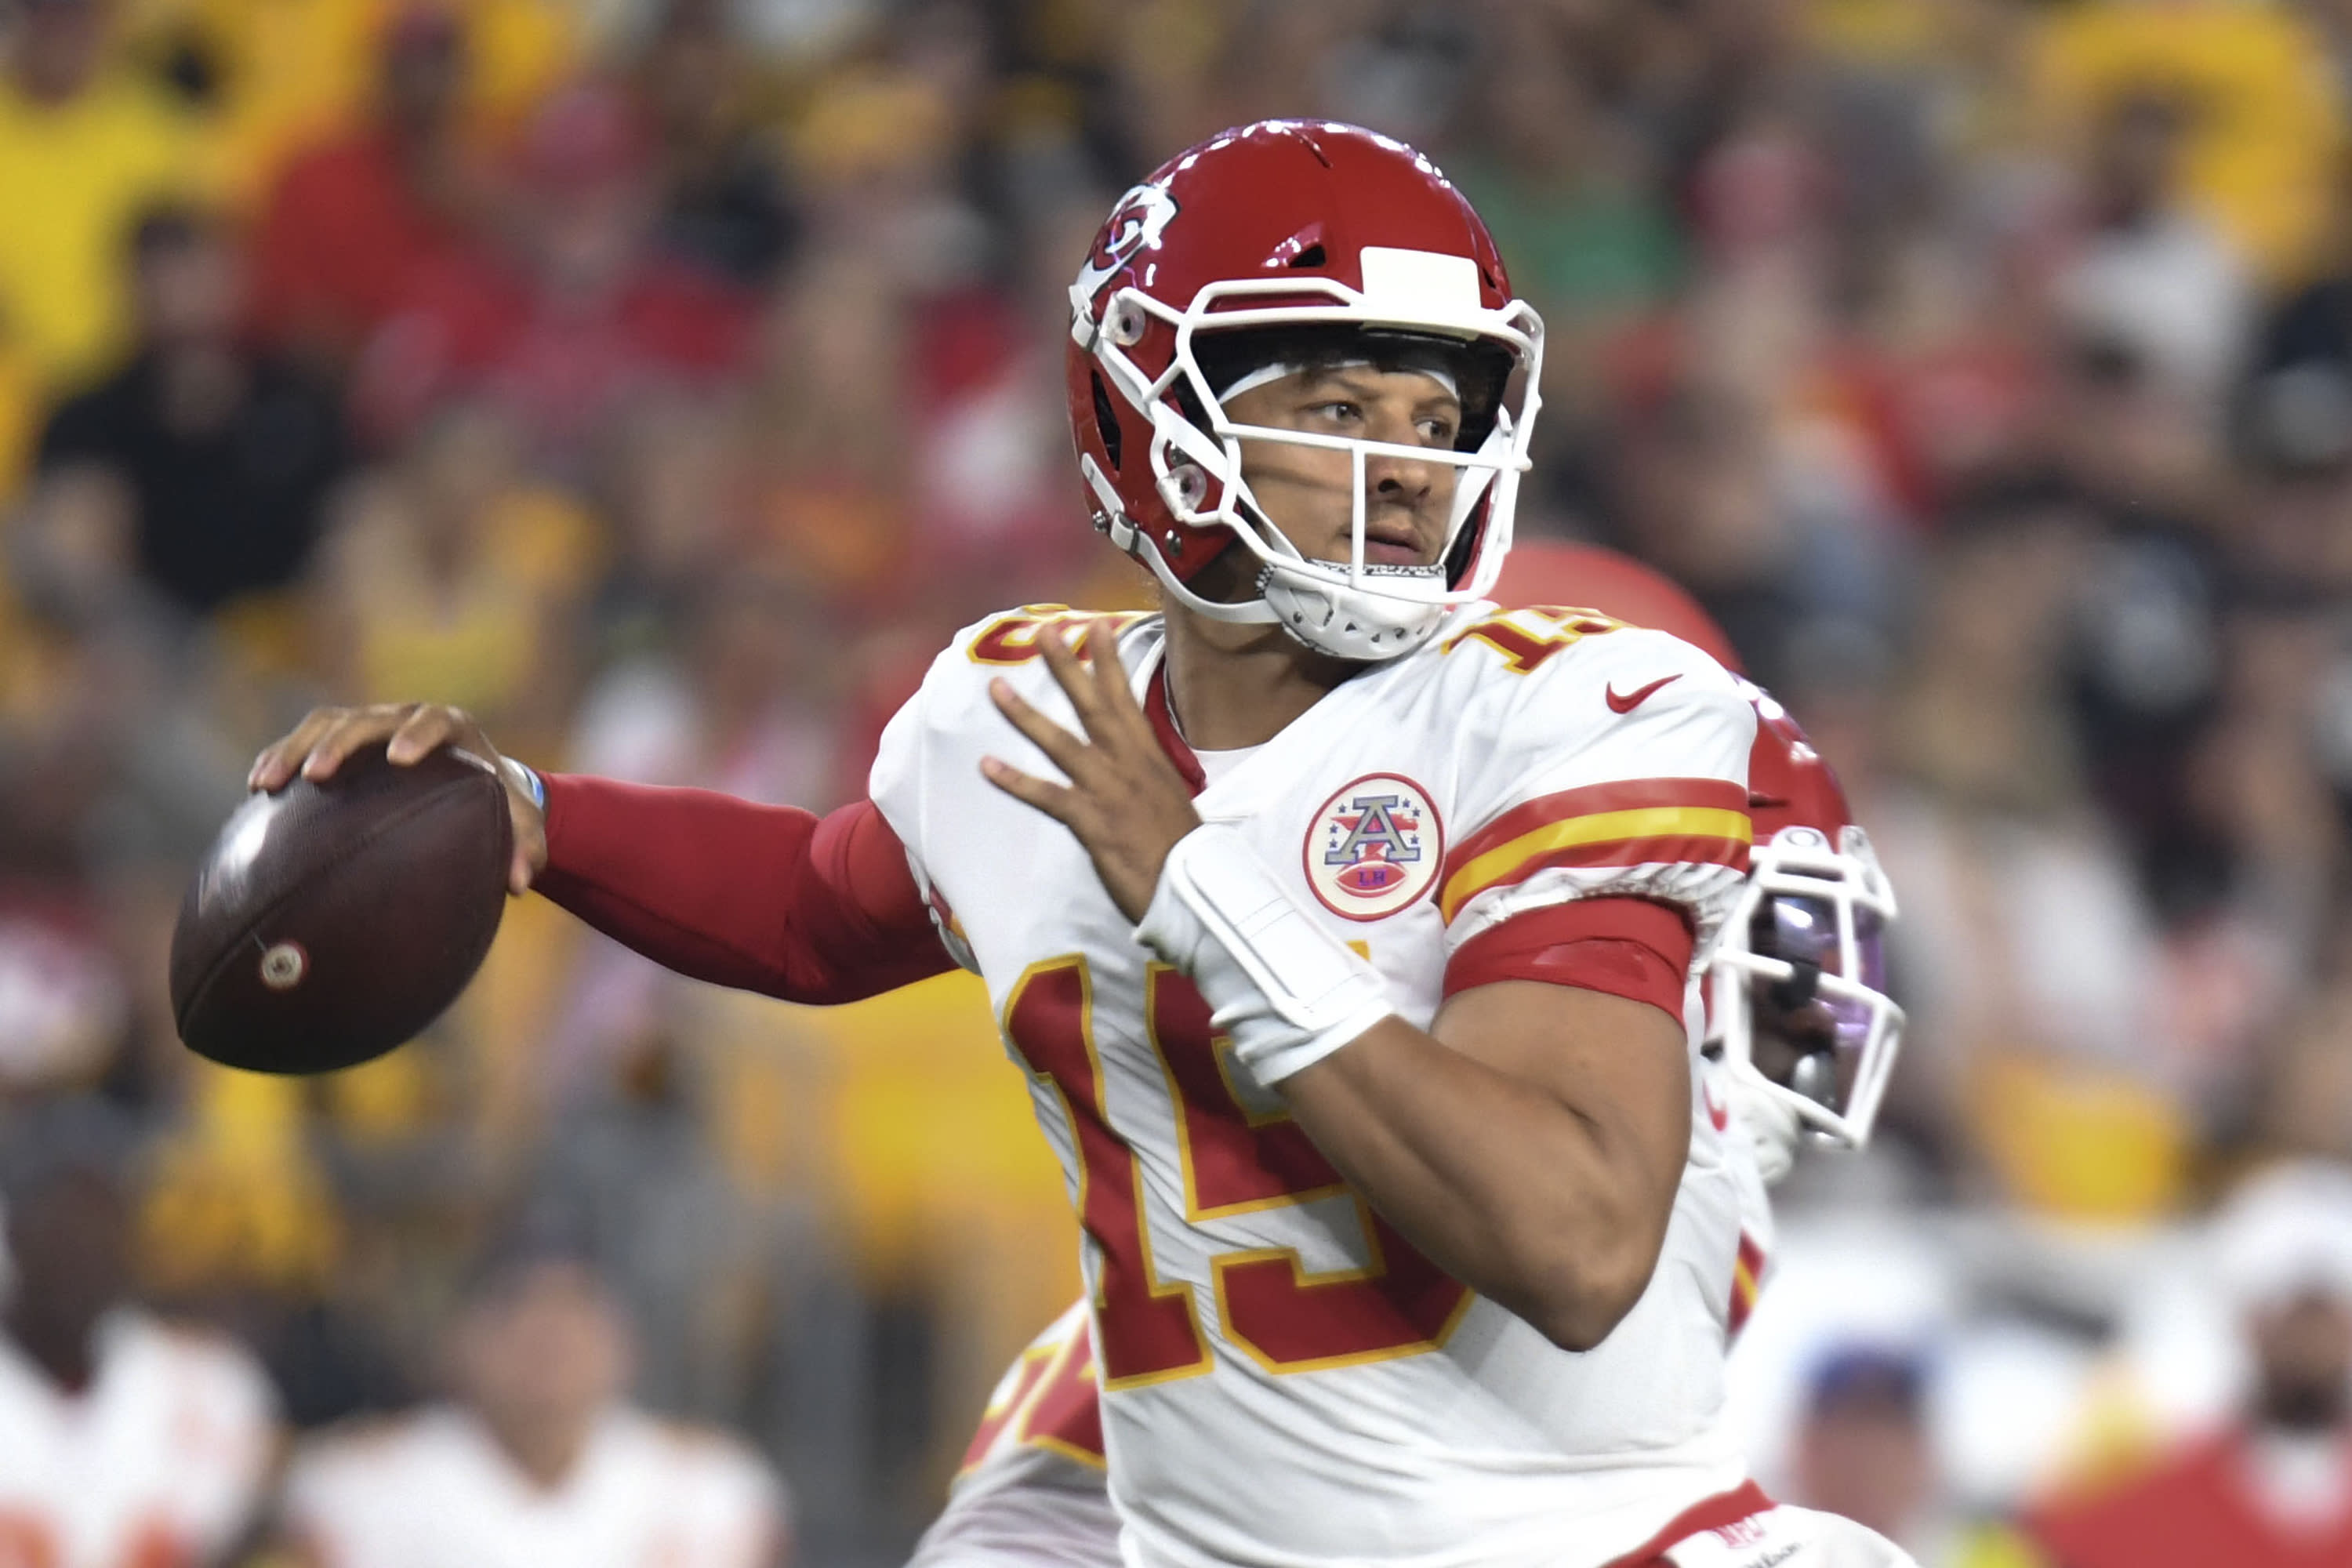 Kansas City Chiefs quarterback Patrick Mahomes passes in the first half of an NFL football game against the Pittsburgh Steelers, Saturday, Aug. 17, 2019, in Pittsburgh. (AP Photo/Barry Reeger)